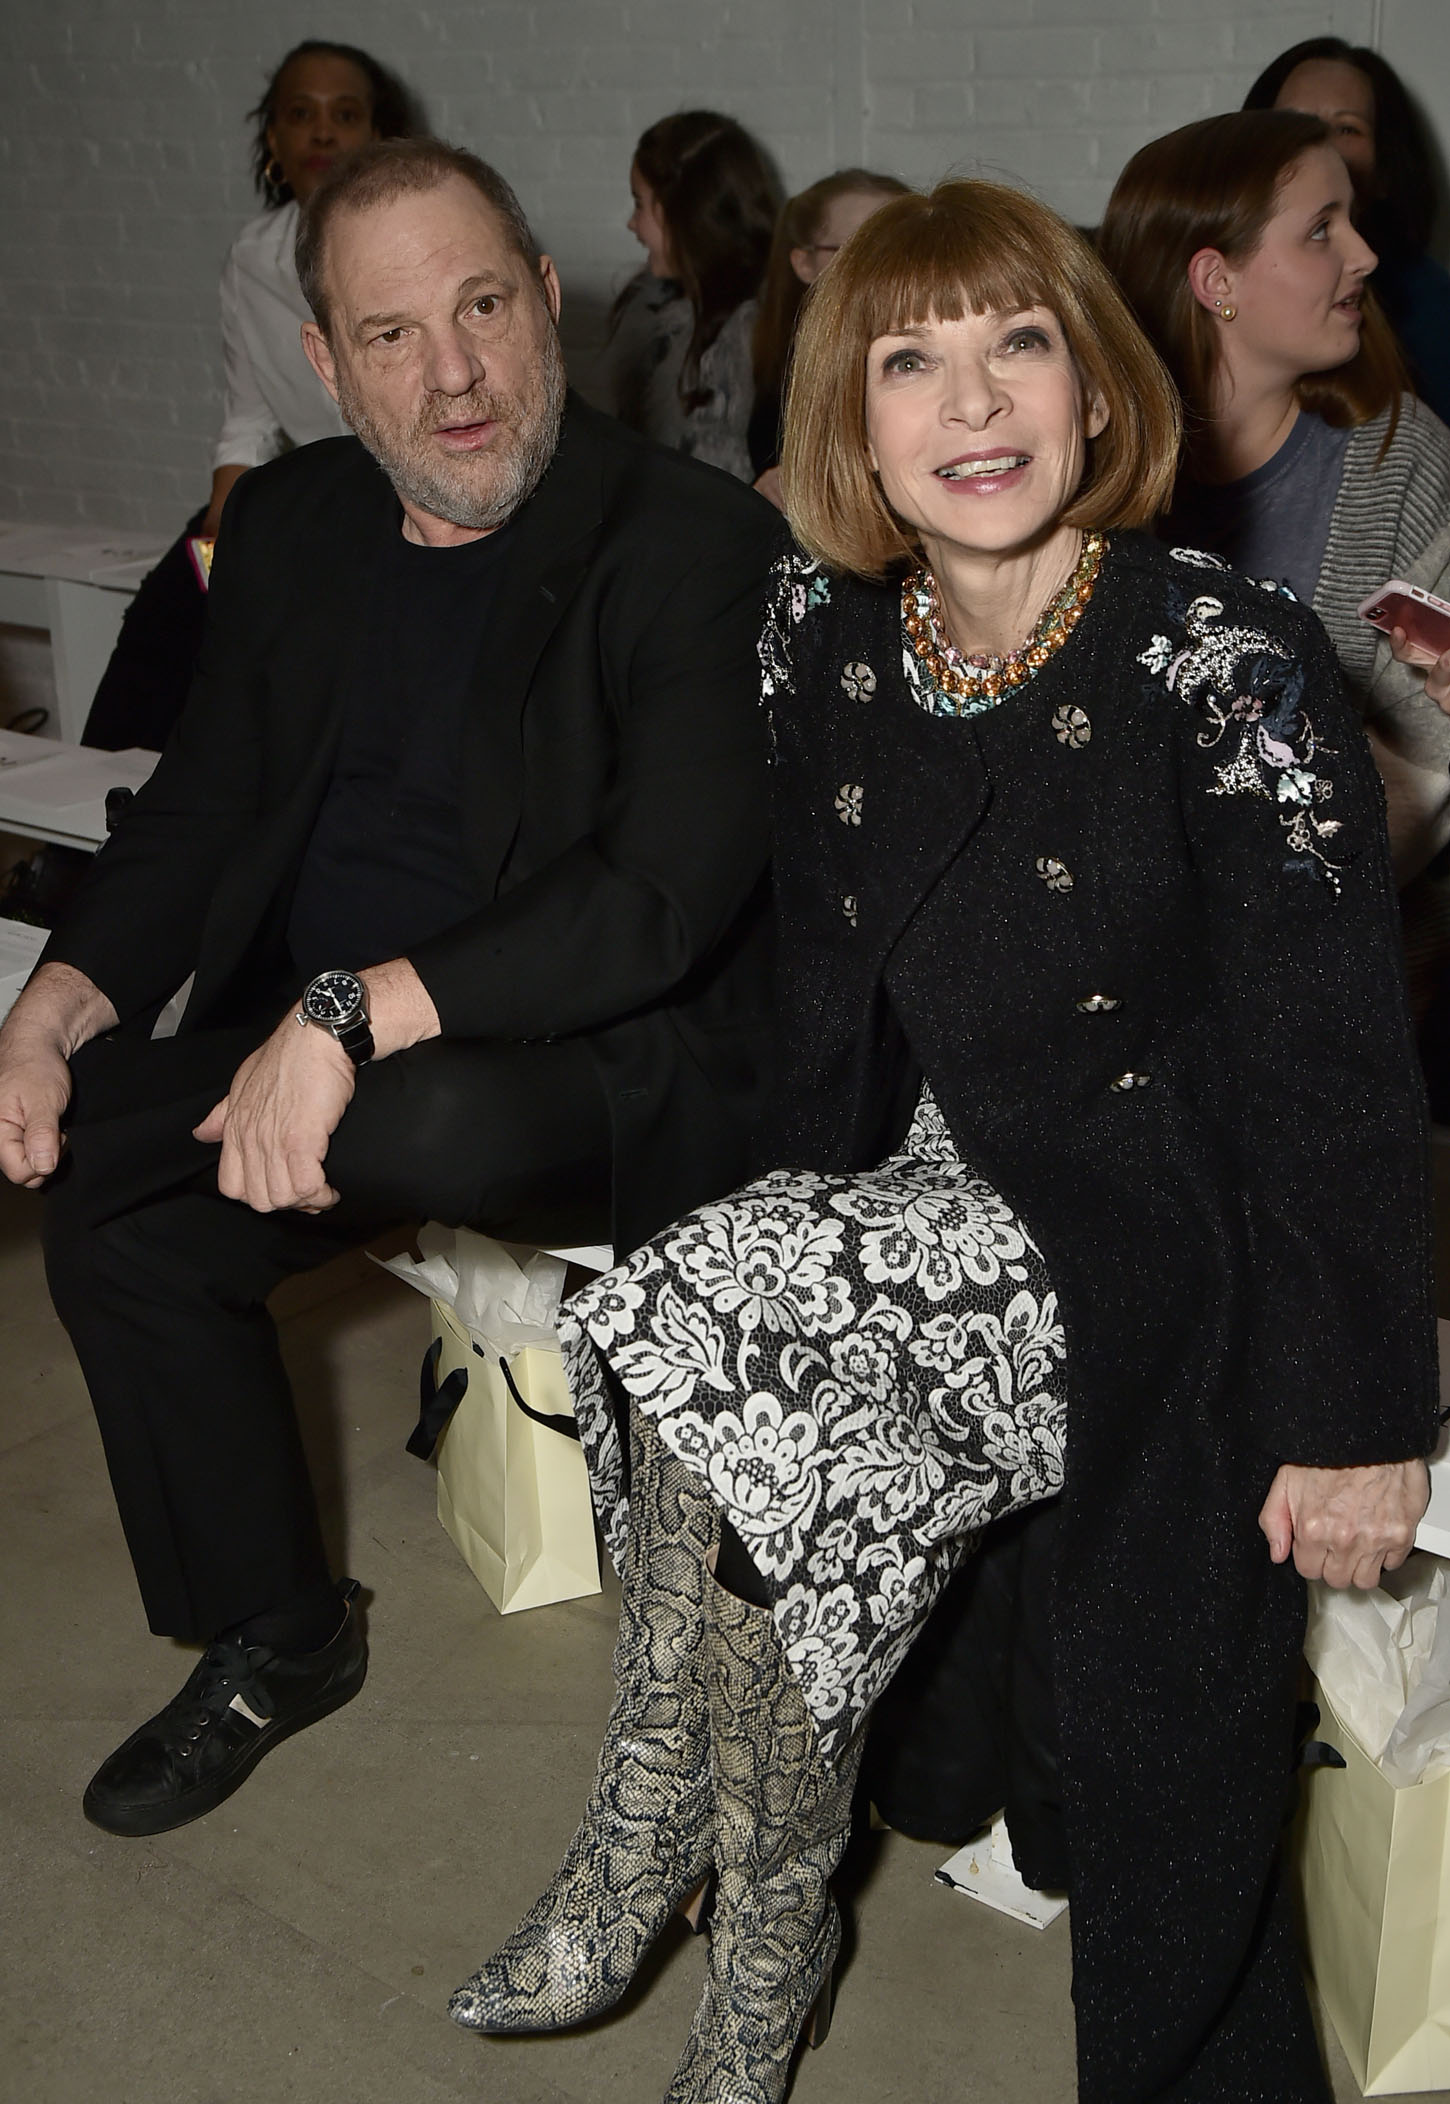 NEW YORK, NY - FEBRUARY 15:  Producer Harvey Weinstein and Vogue editor-in-chief Anna Wintour attend the Marchesa fashion show during, New York Fashion Week: The Shows at Gallery 2, Skylight Clarkson Sq on February 15, 2017 in New York City.  (Photo by Theo Wargo/Getty Images for New York Fashion Week: The Shows)